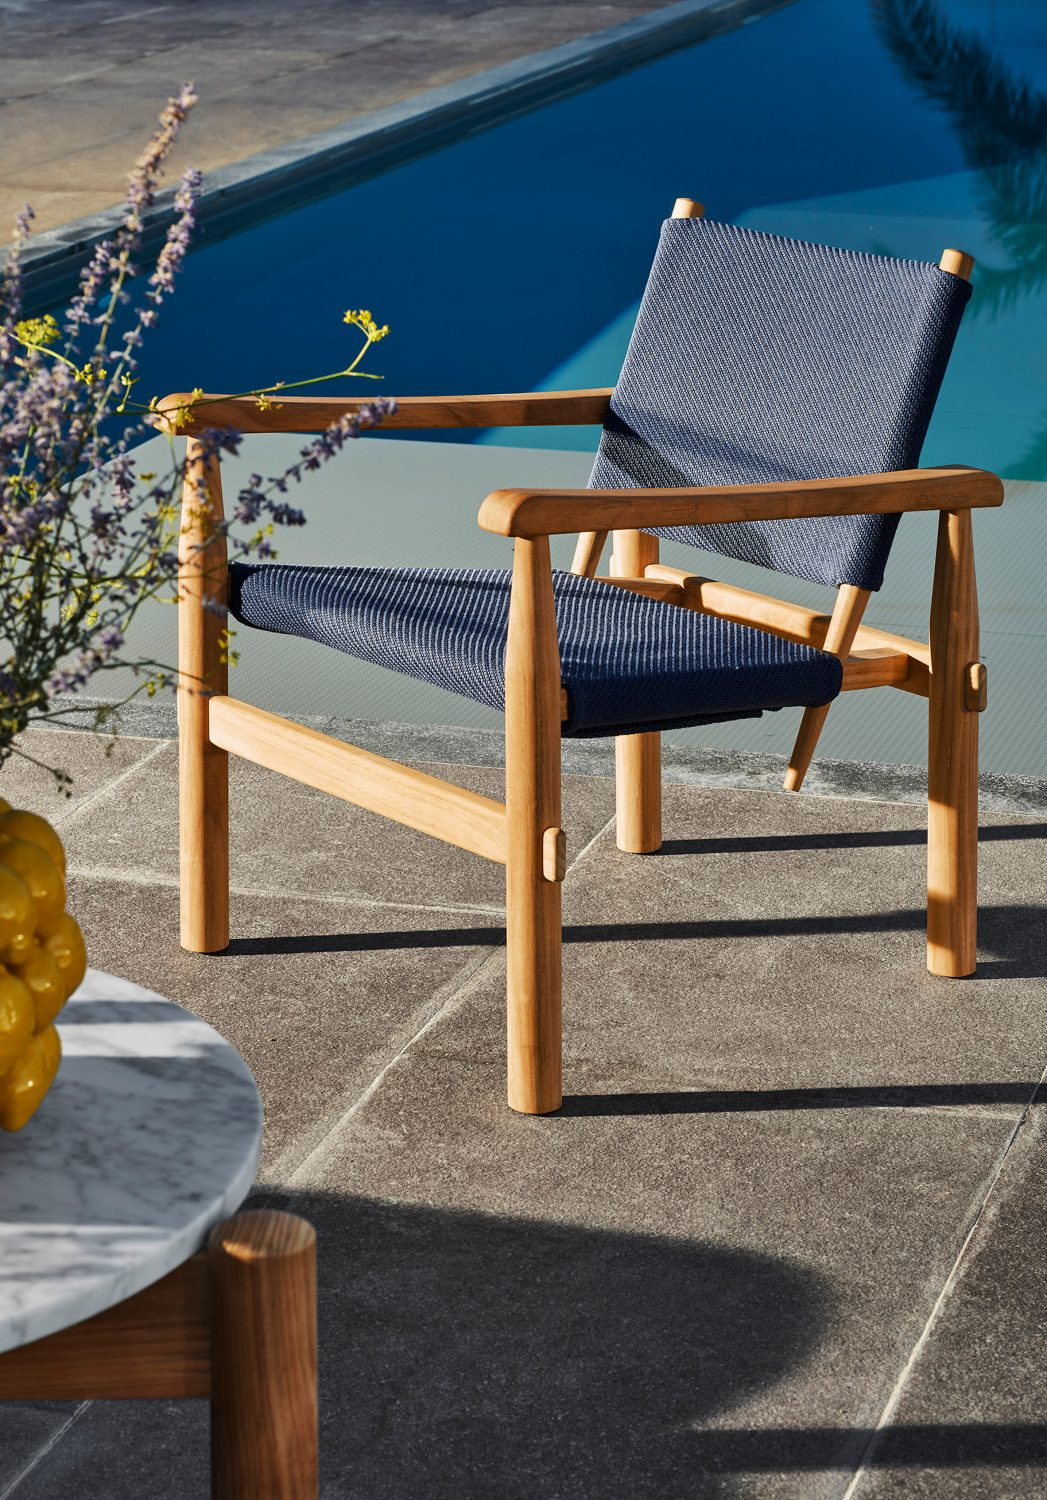 Cassina Unveils Outdoor Furniture Collection cassina Cassina Unveils Outdoor Furniture Collection cassina unveils outdoor furniture collection 1 scaled